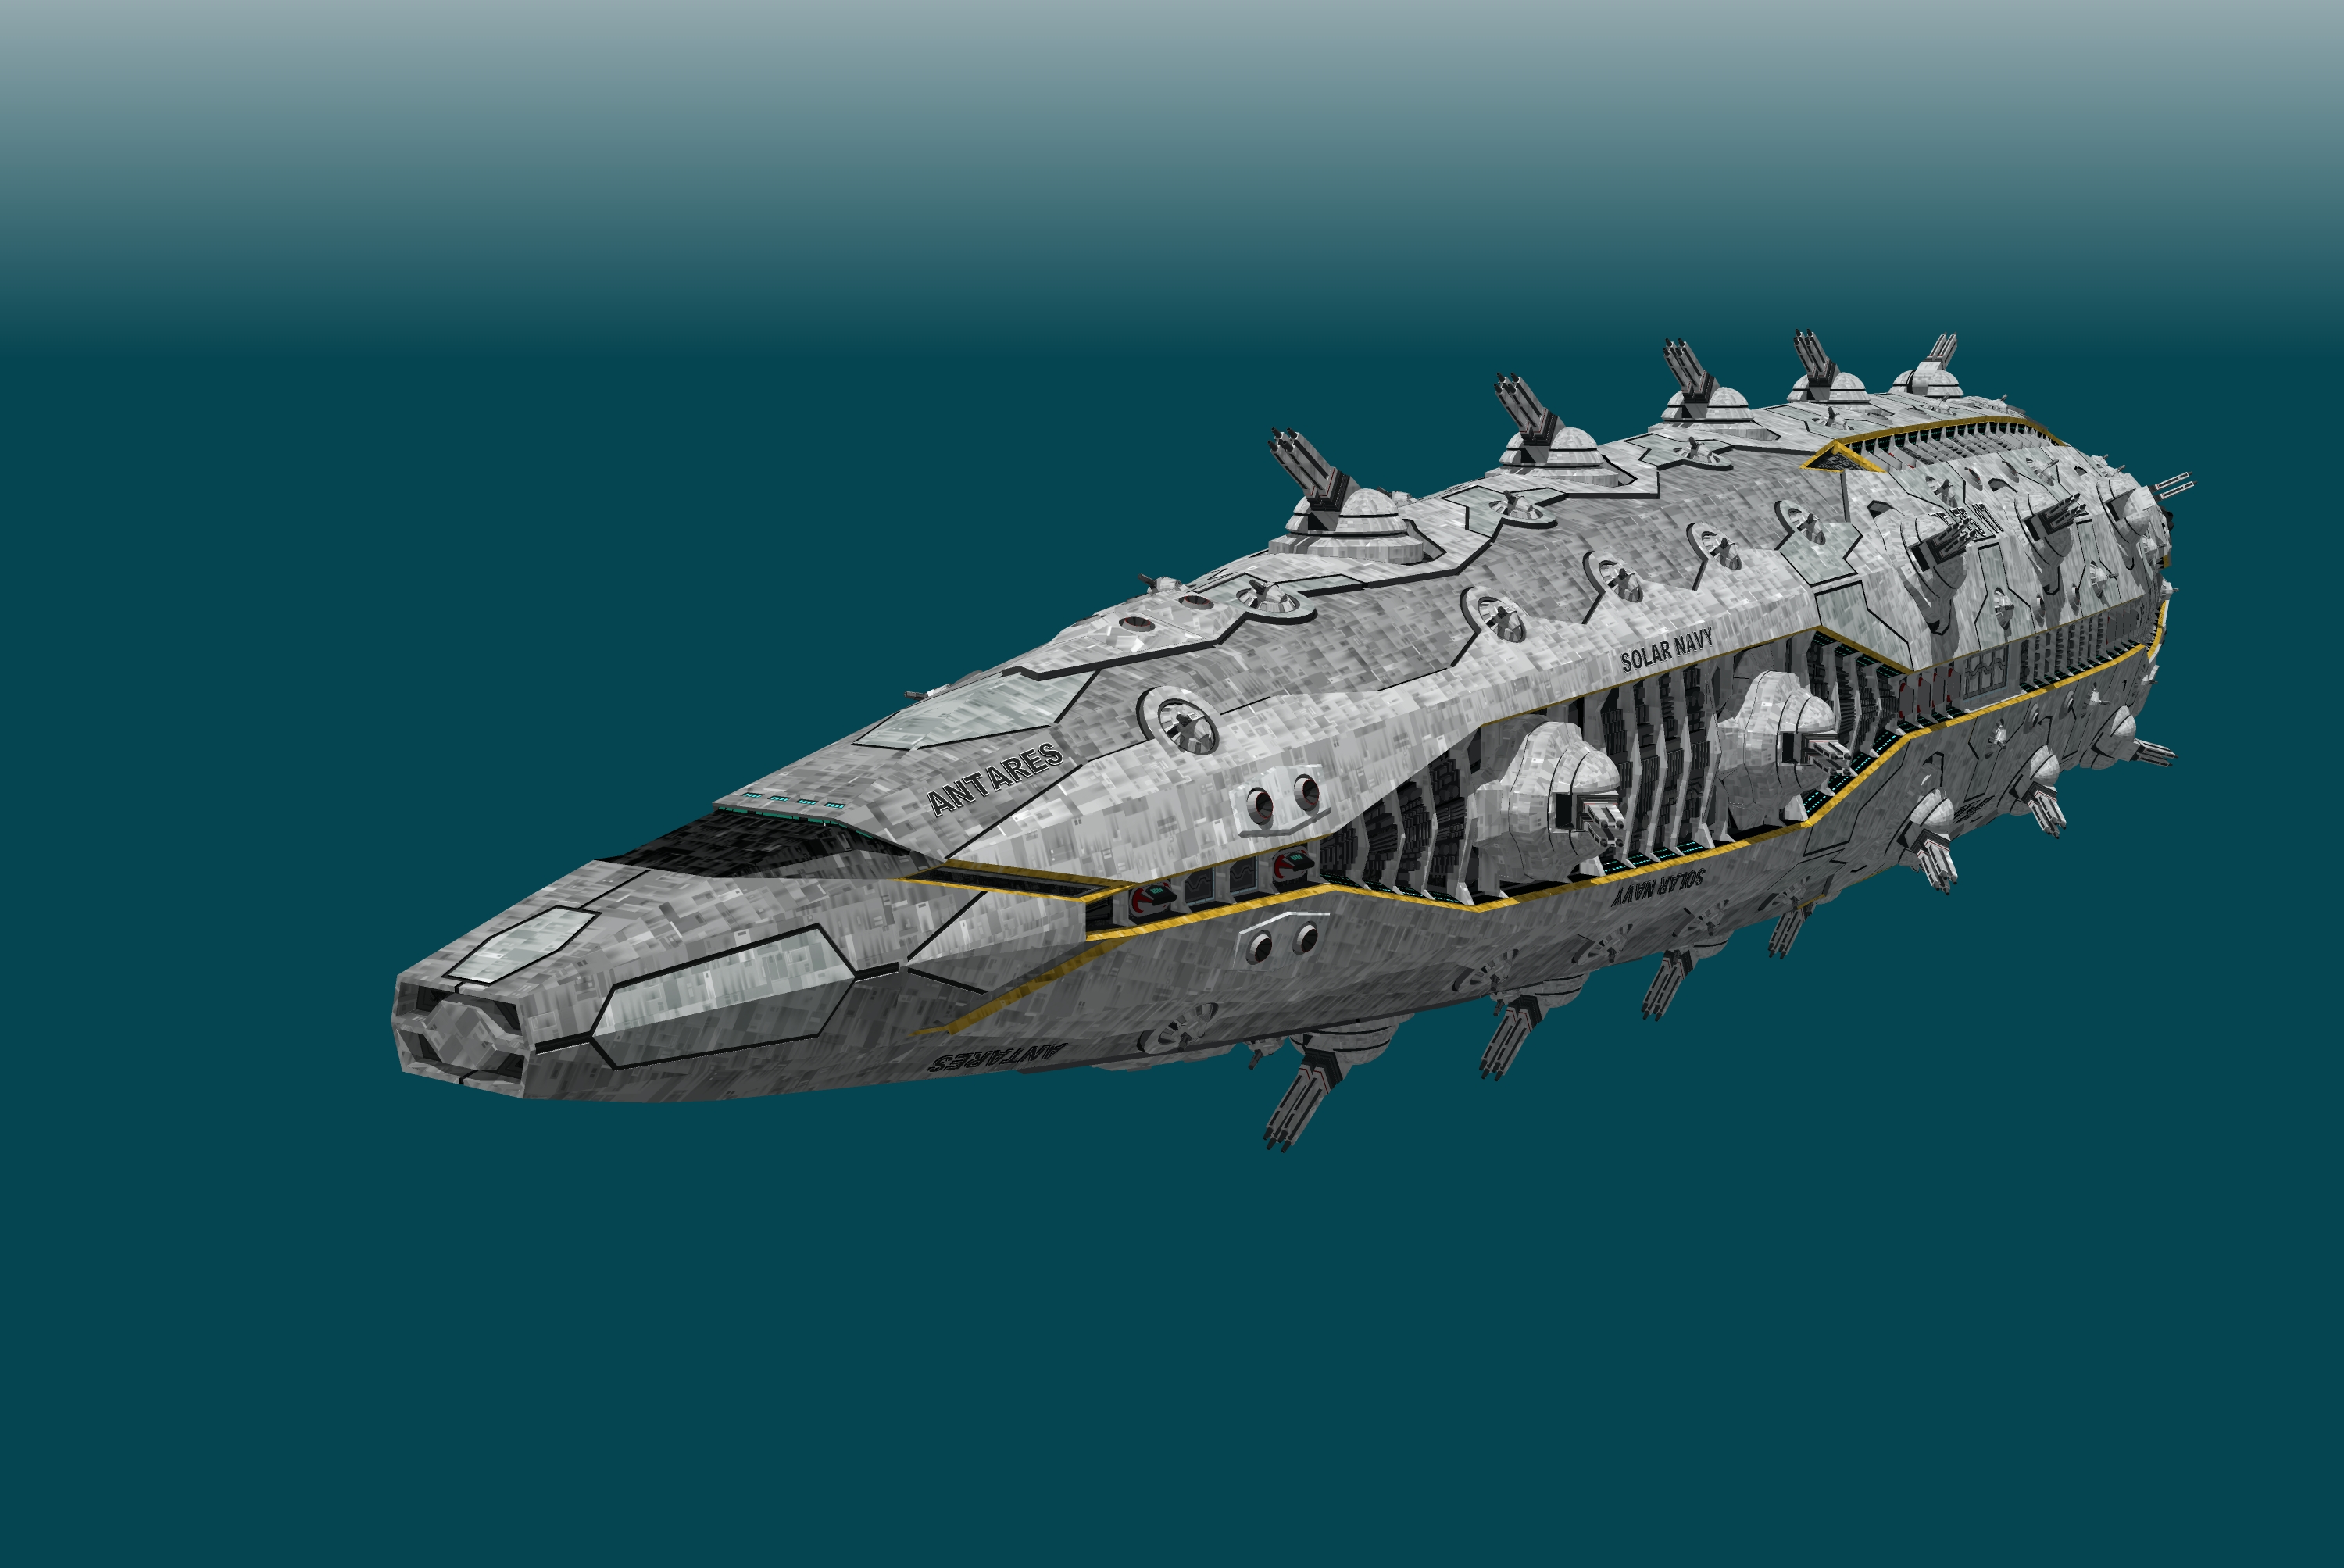 Antares class battlecruiser by Scifiwarships